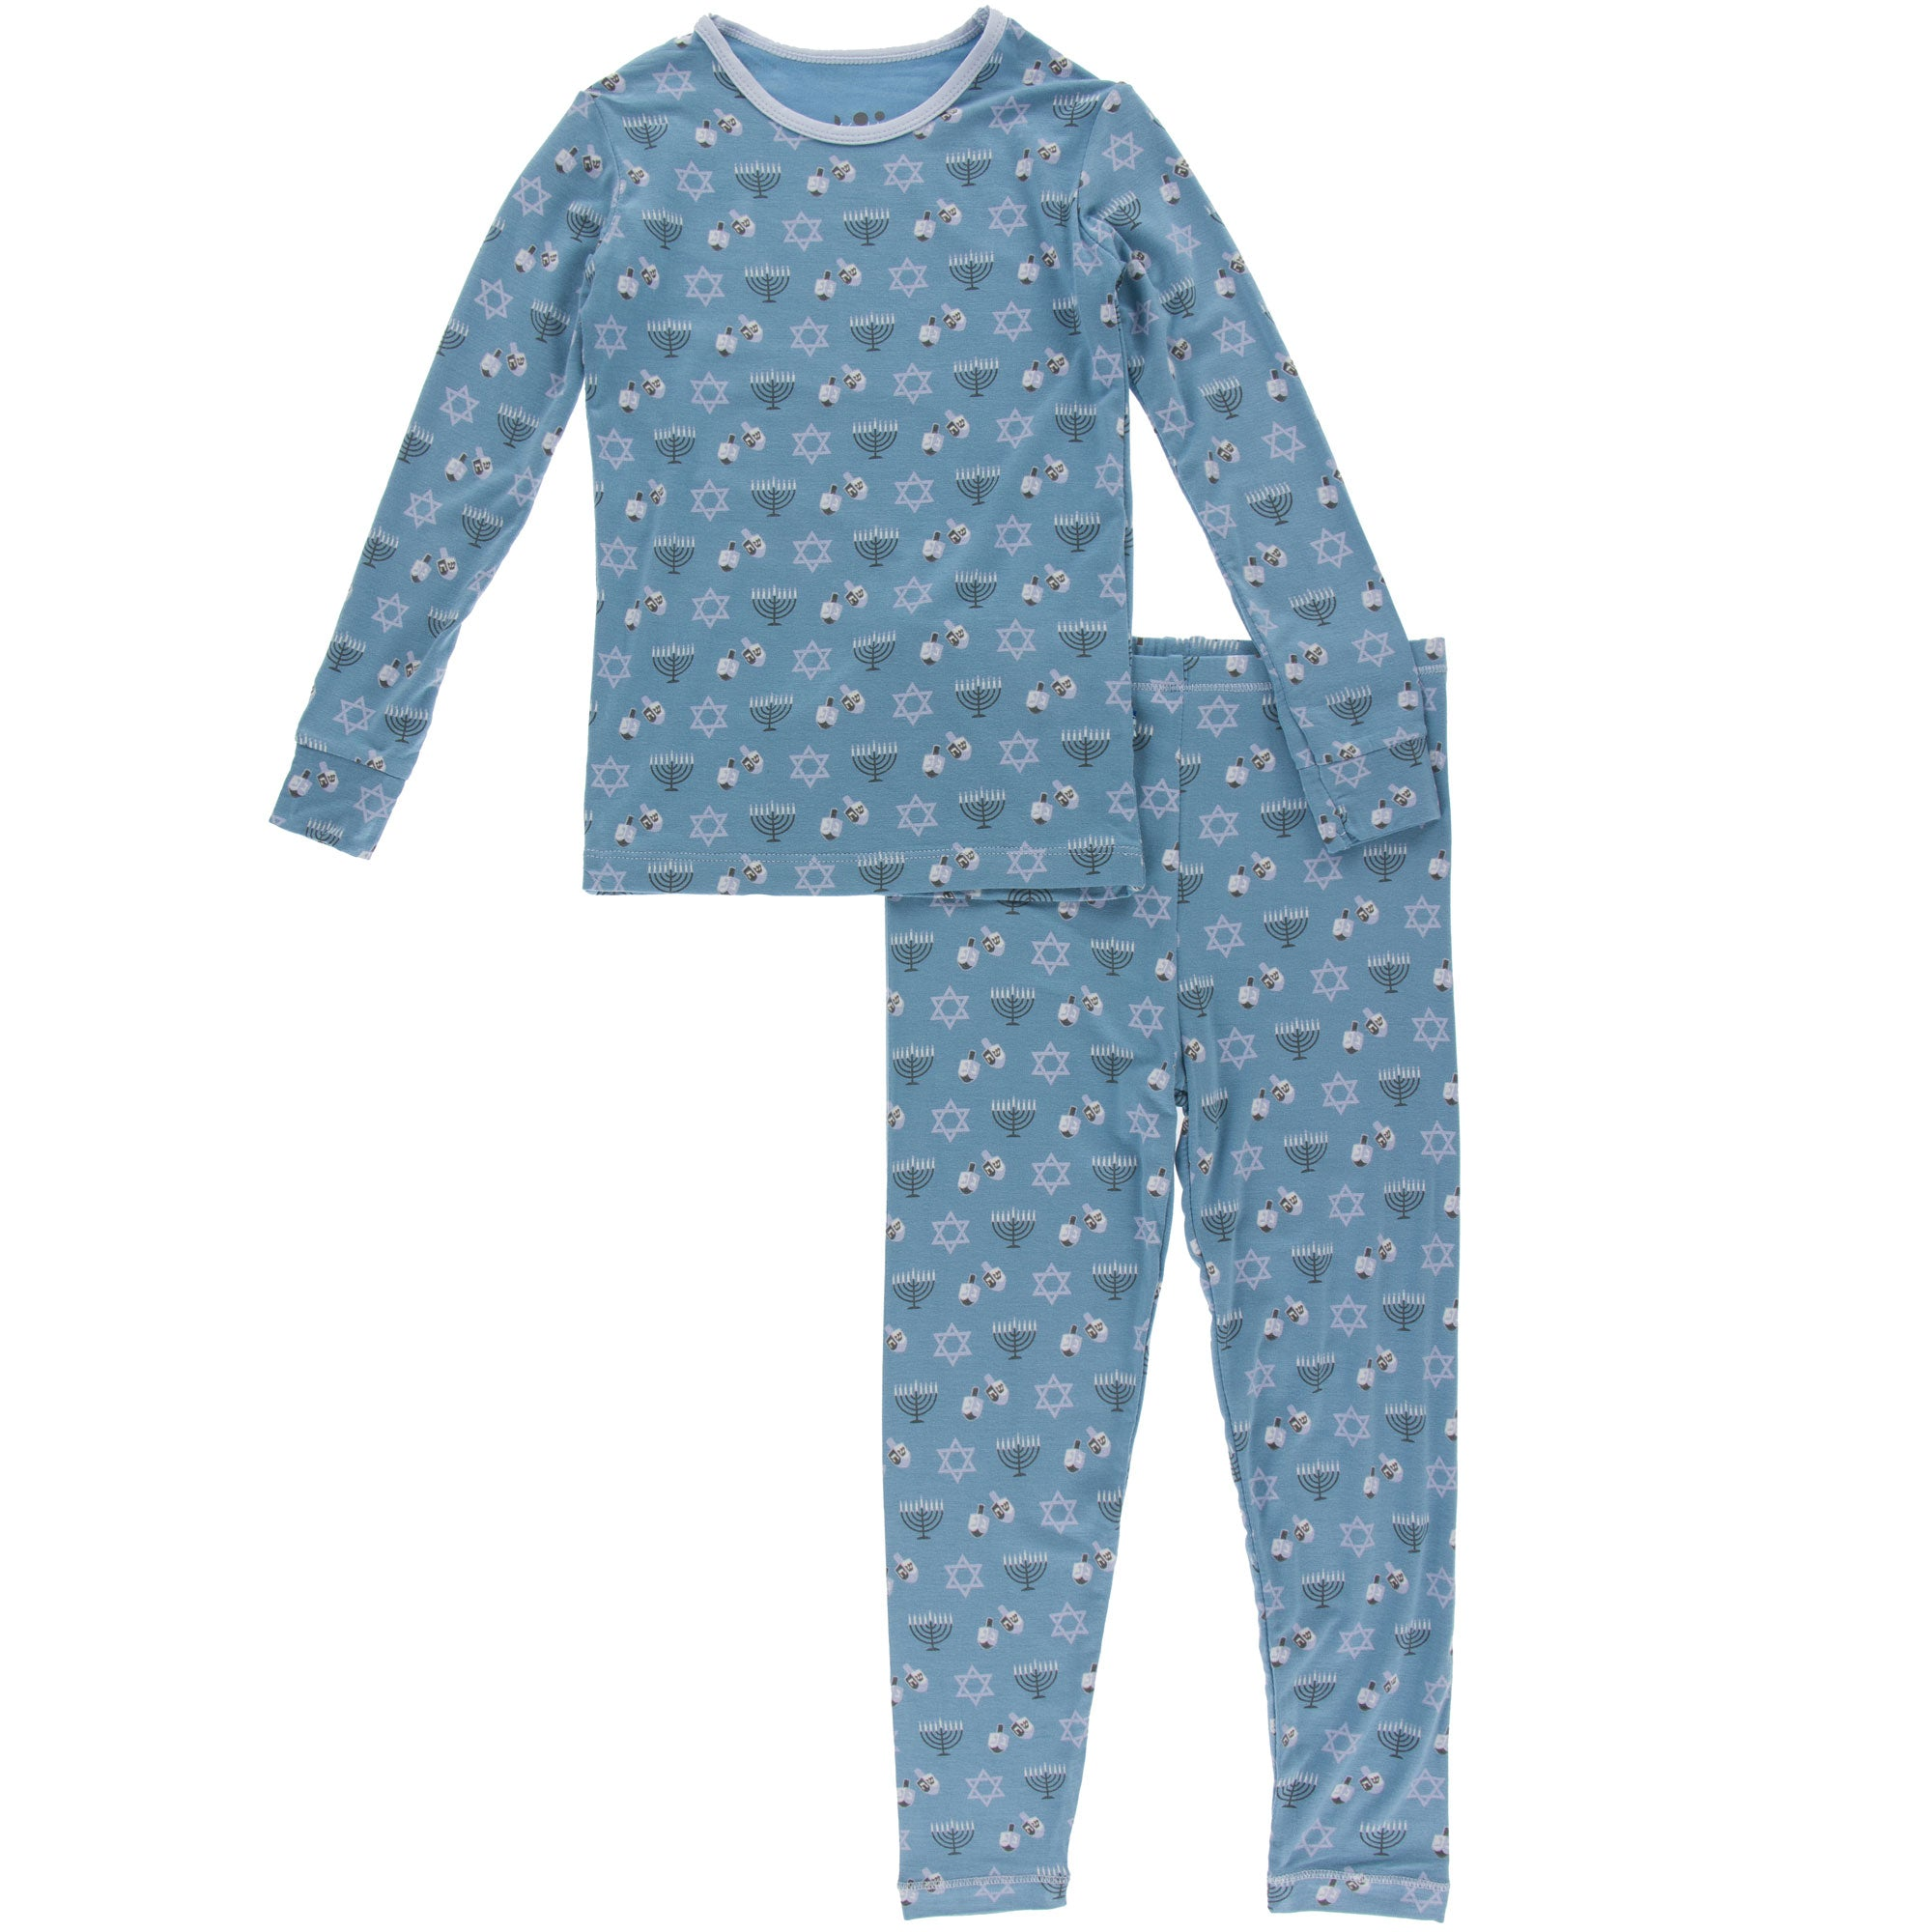 KicKee Pants Pajama Set - Blue Moon Hanukkah